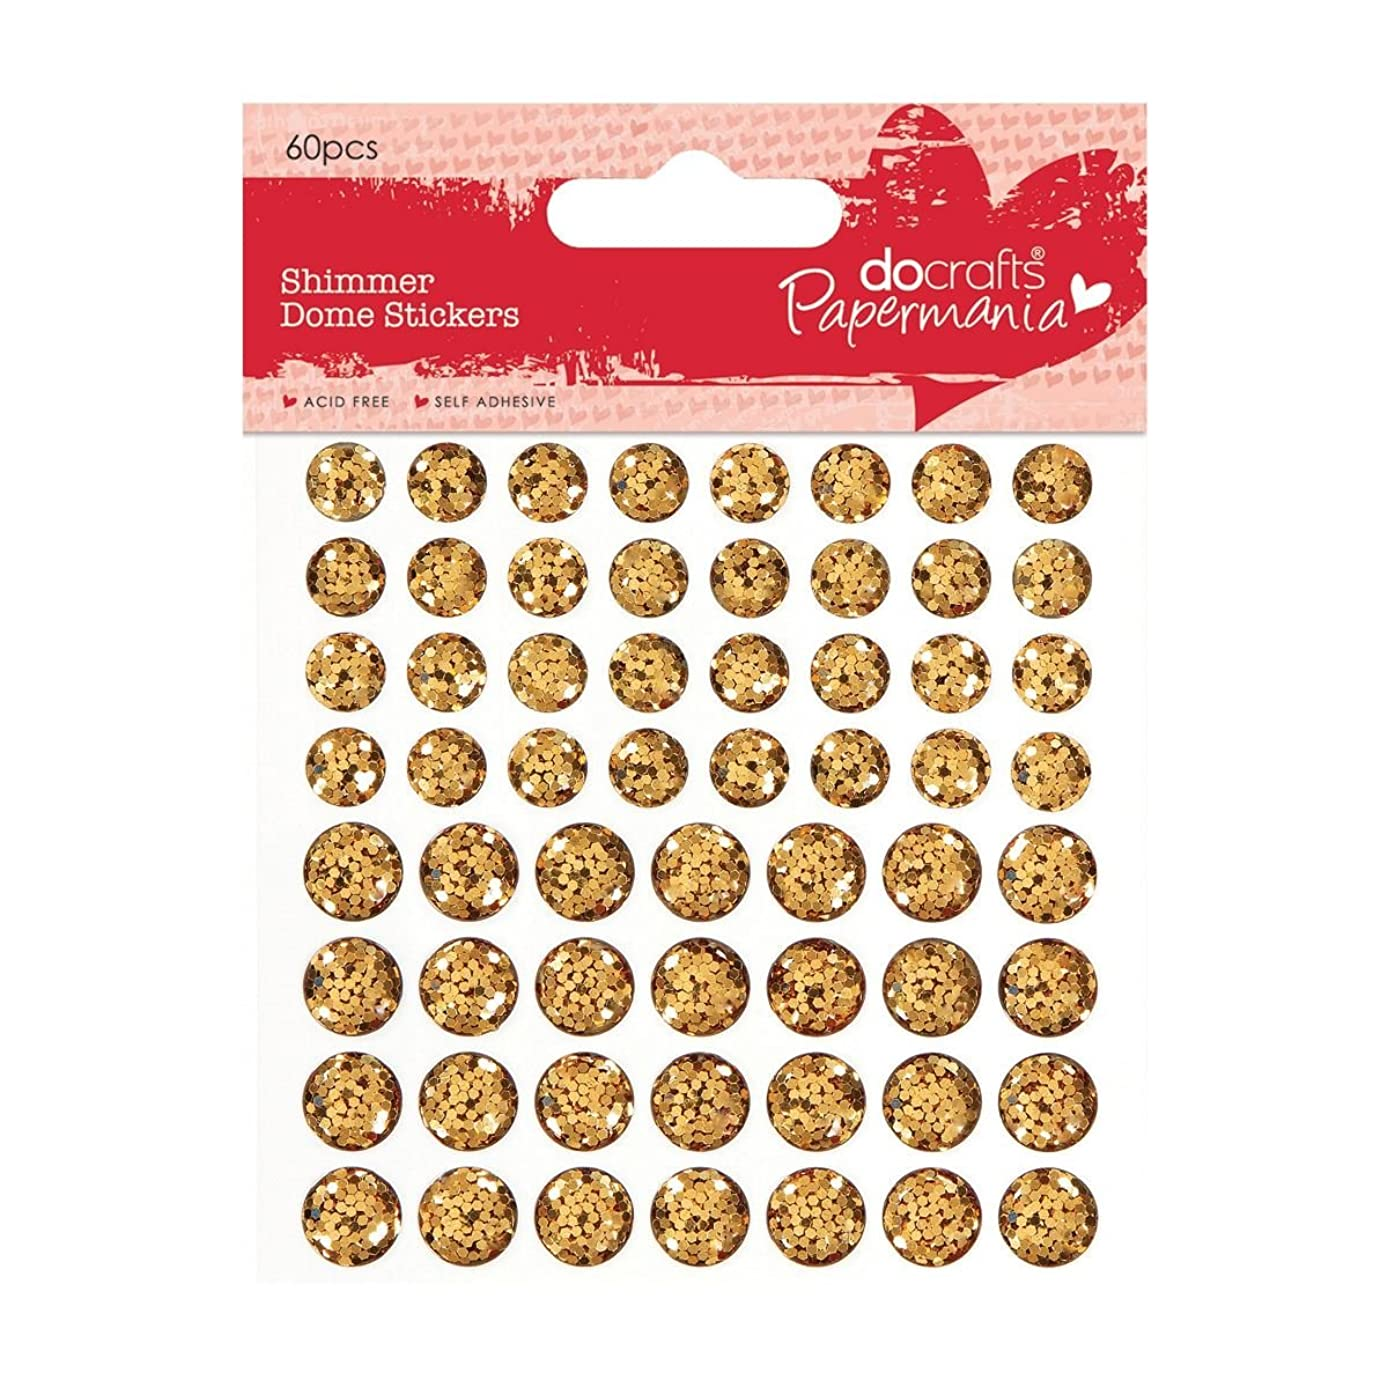 DOCrafts Papermania Shimmer Dome Bling Stickers, Gold